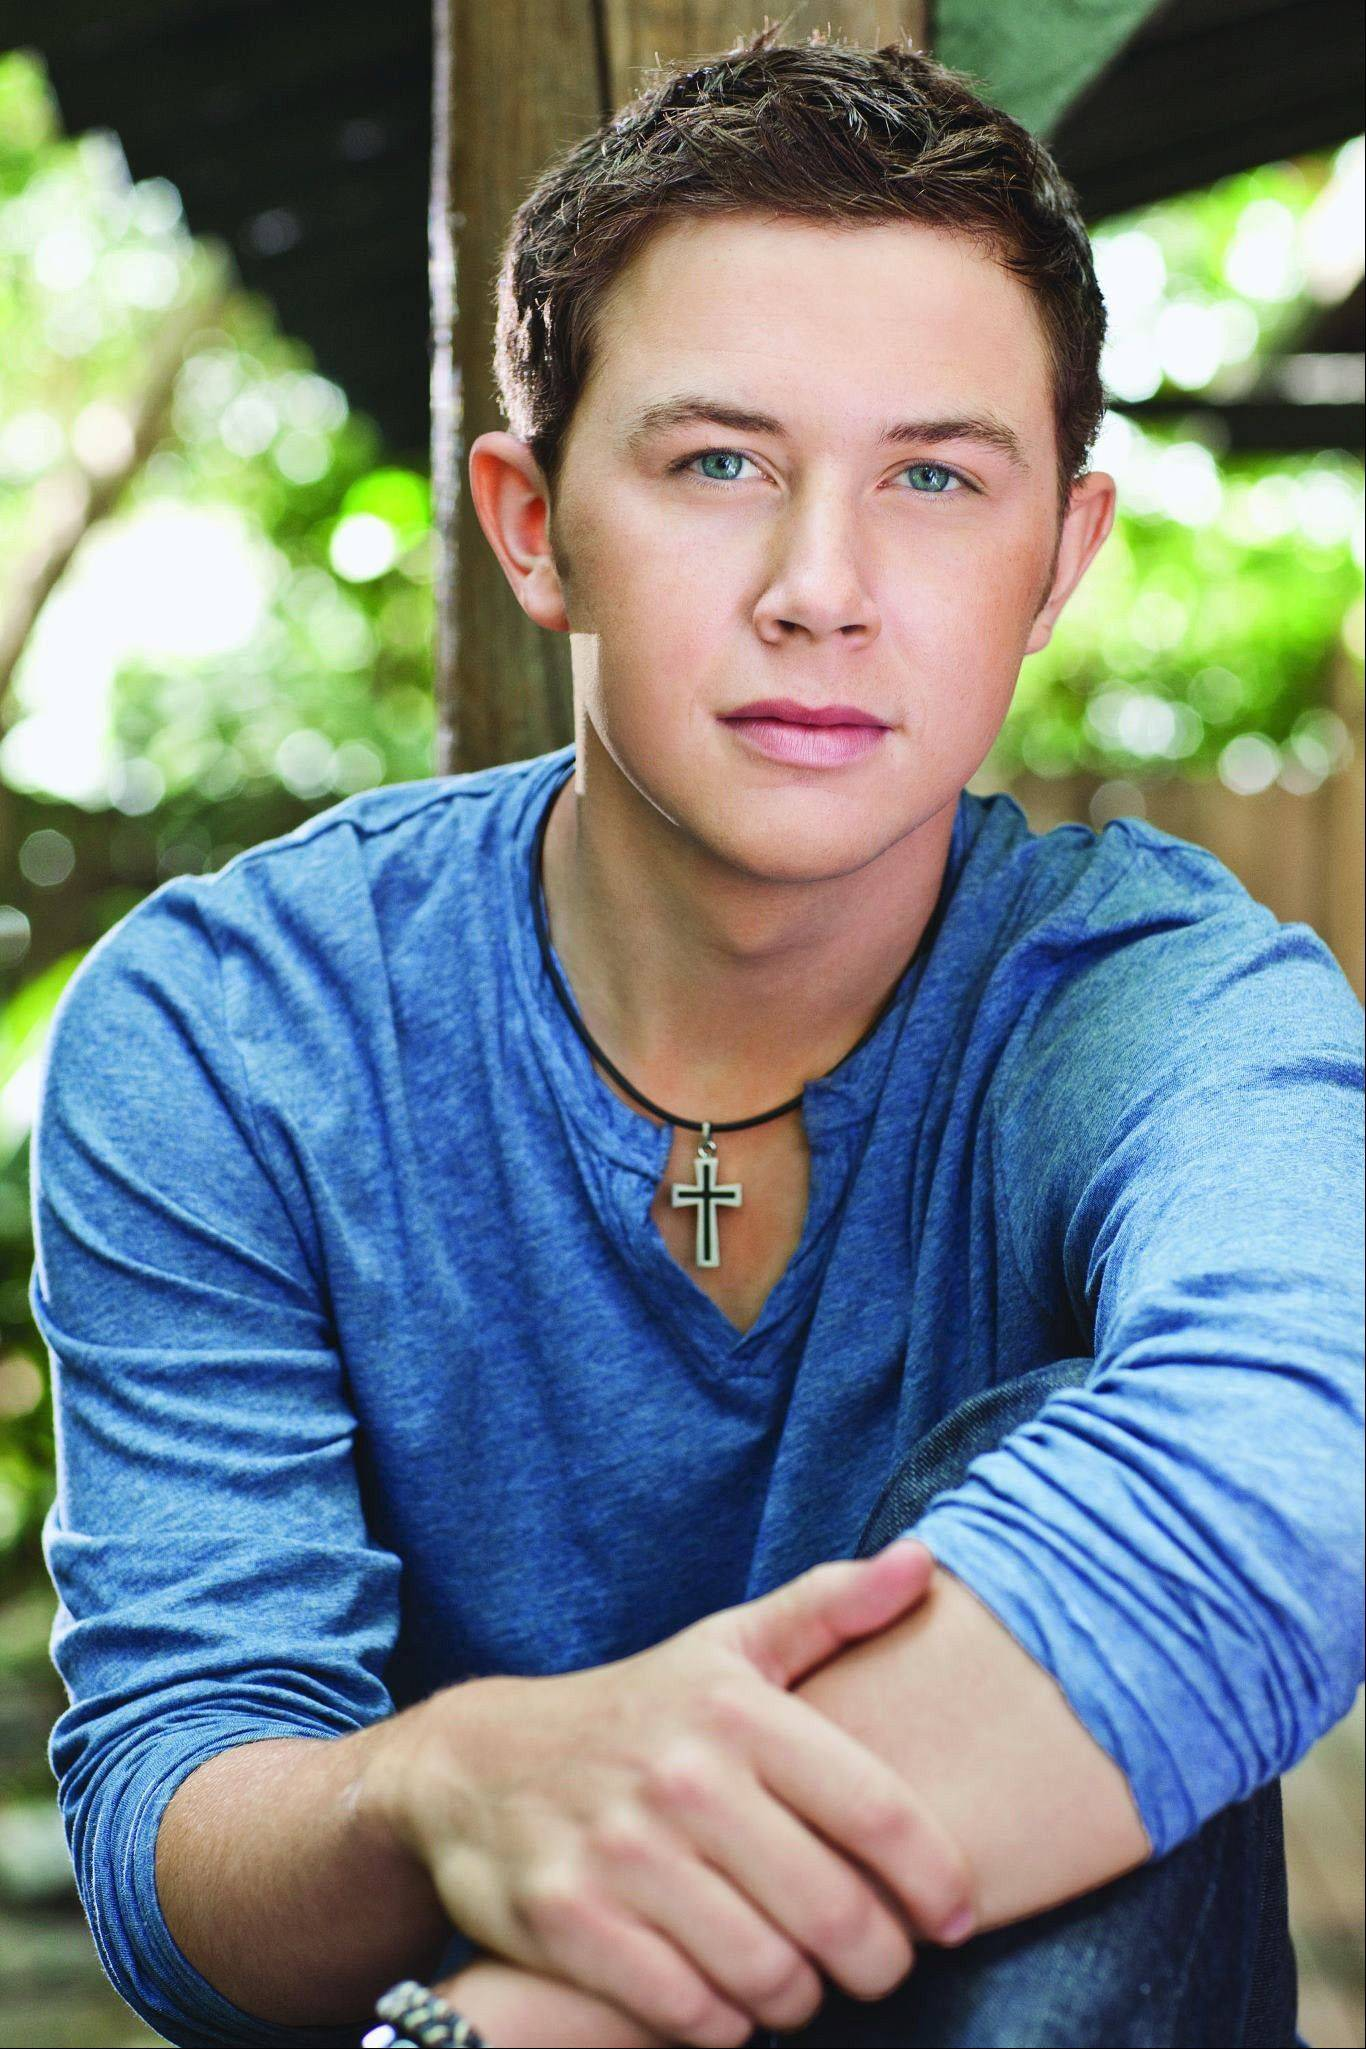 """American Idol"" winner Scotty McCreery will perform at the Paramount Theatre in Aurora on Thursday, March 28."